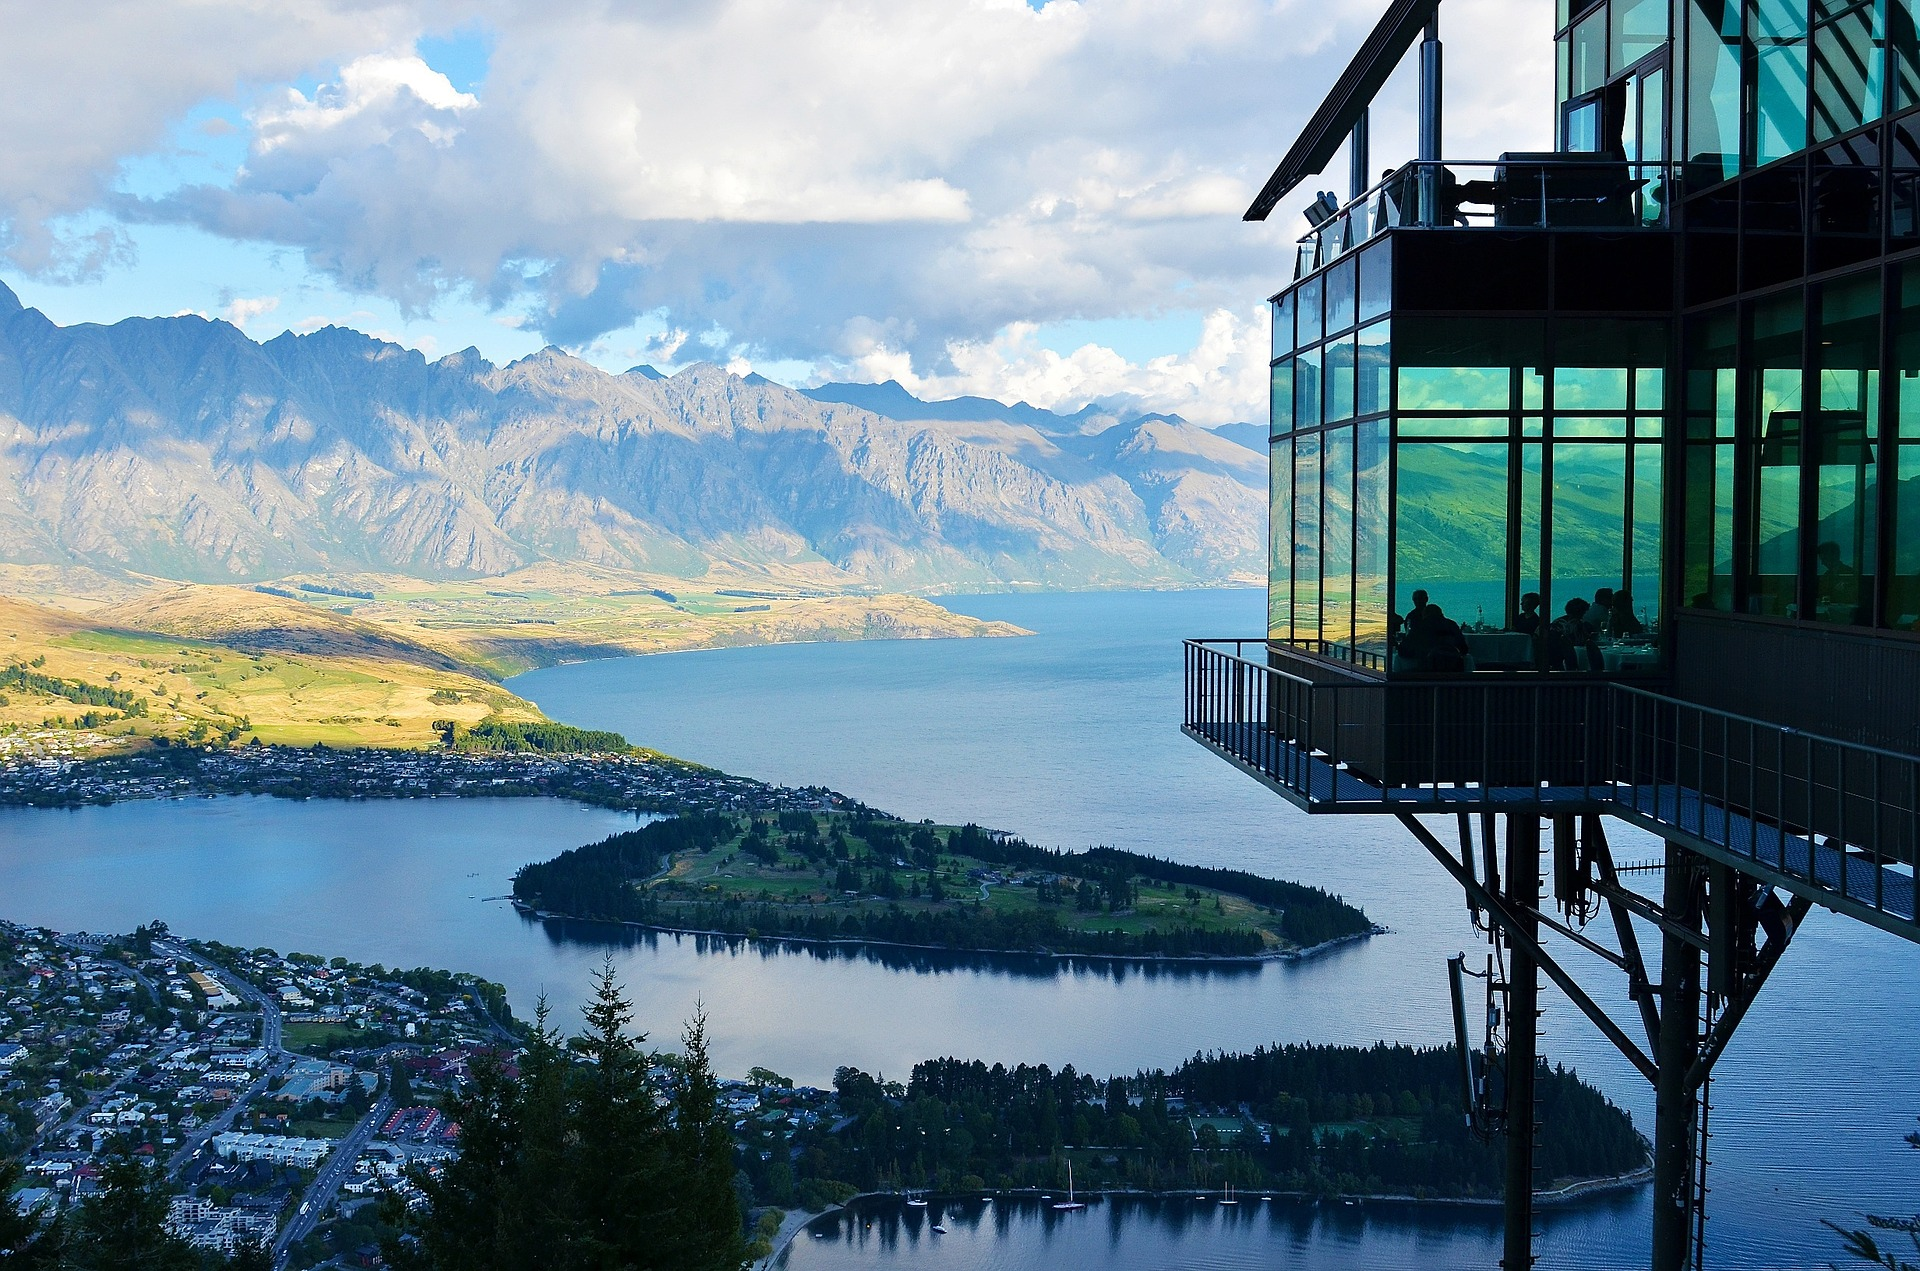 New Zealand Mountain Hotel View